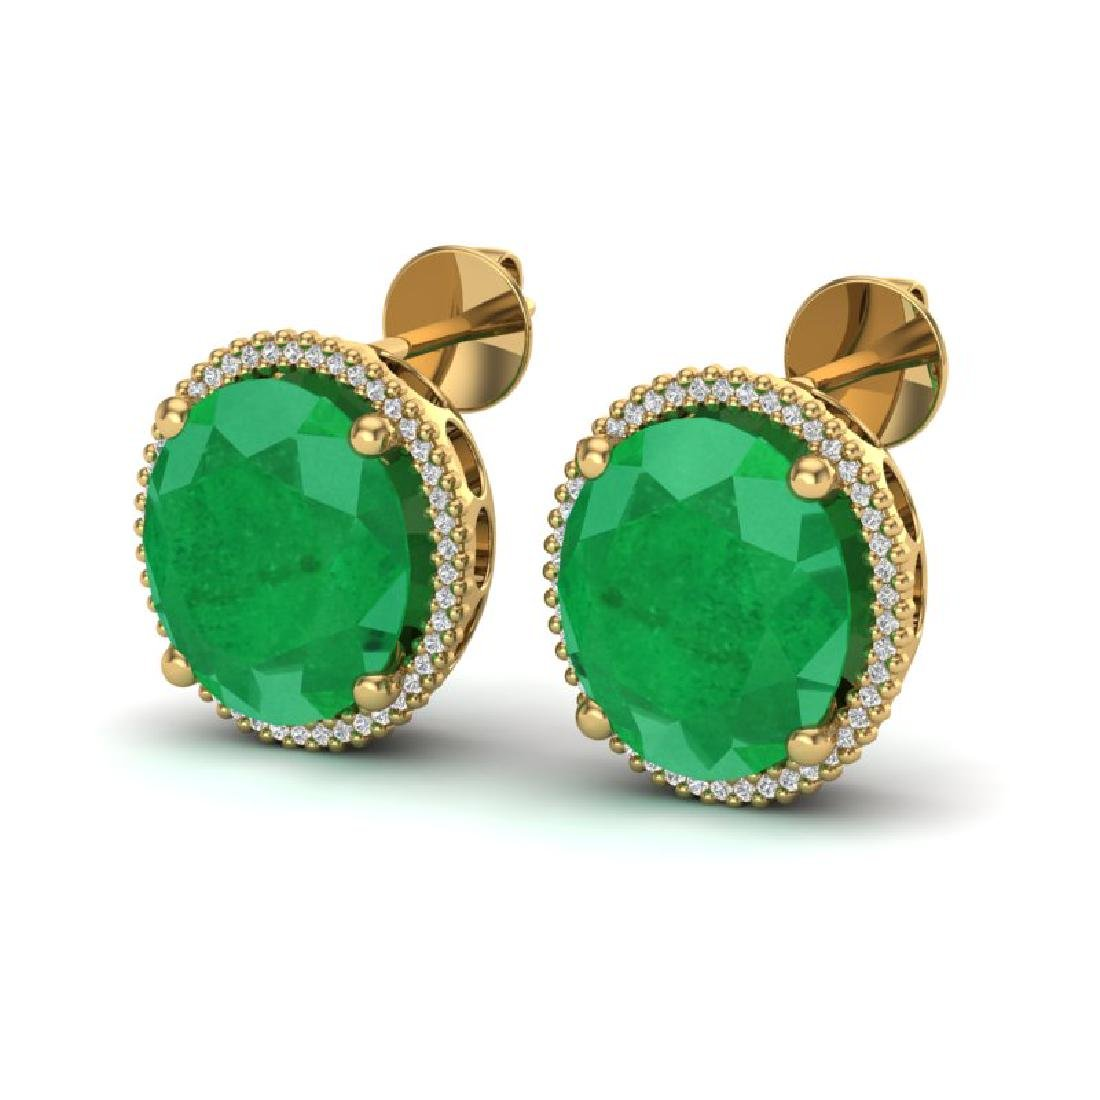 25 CTW Emerald & Micro Pave VS/SI Diamond Halo Earrings